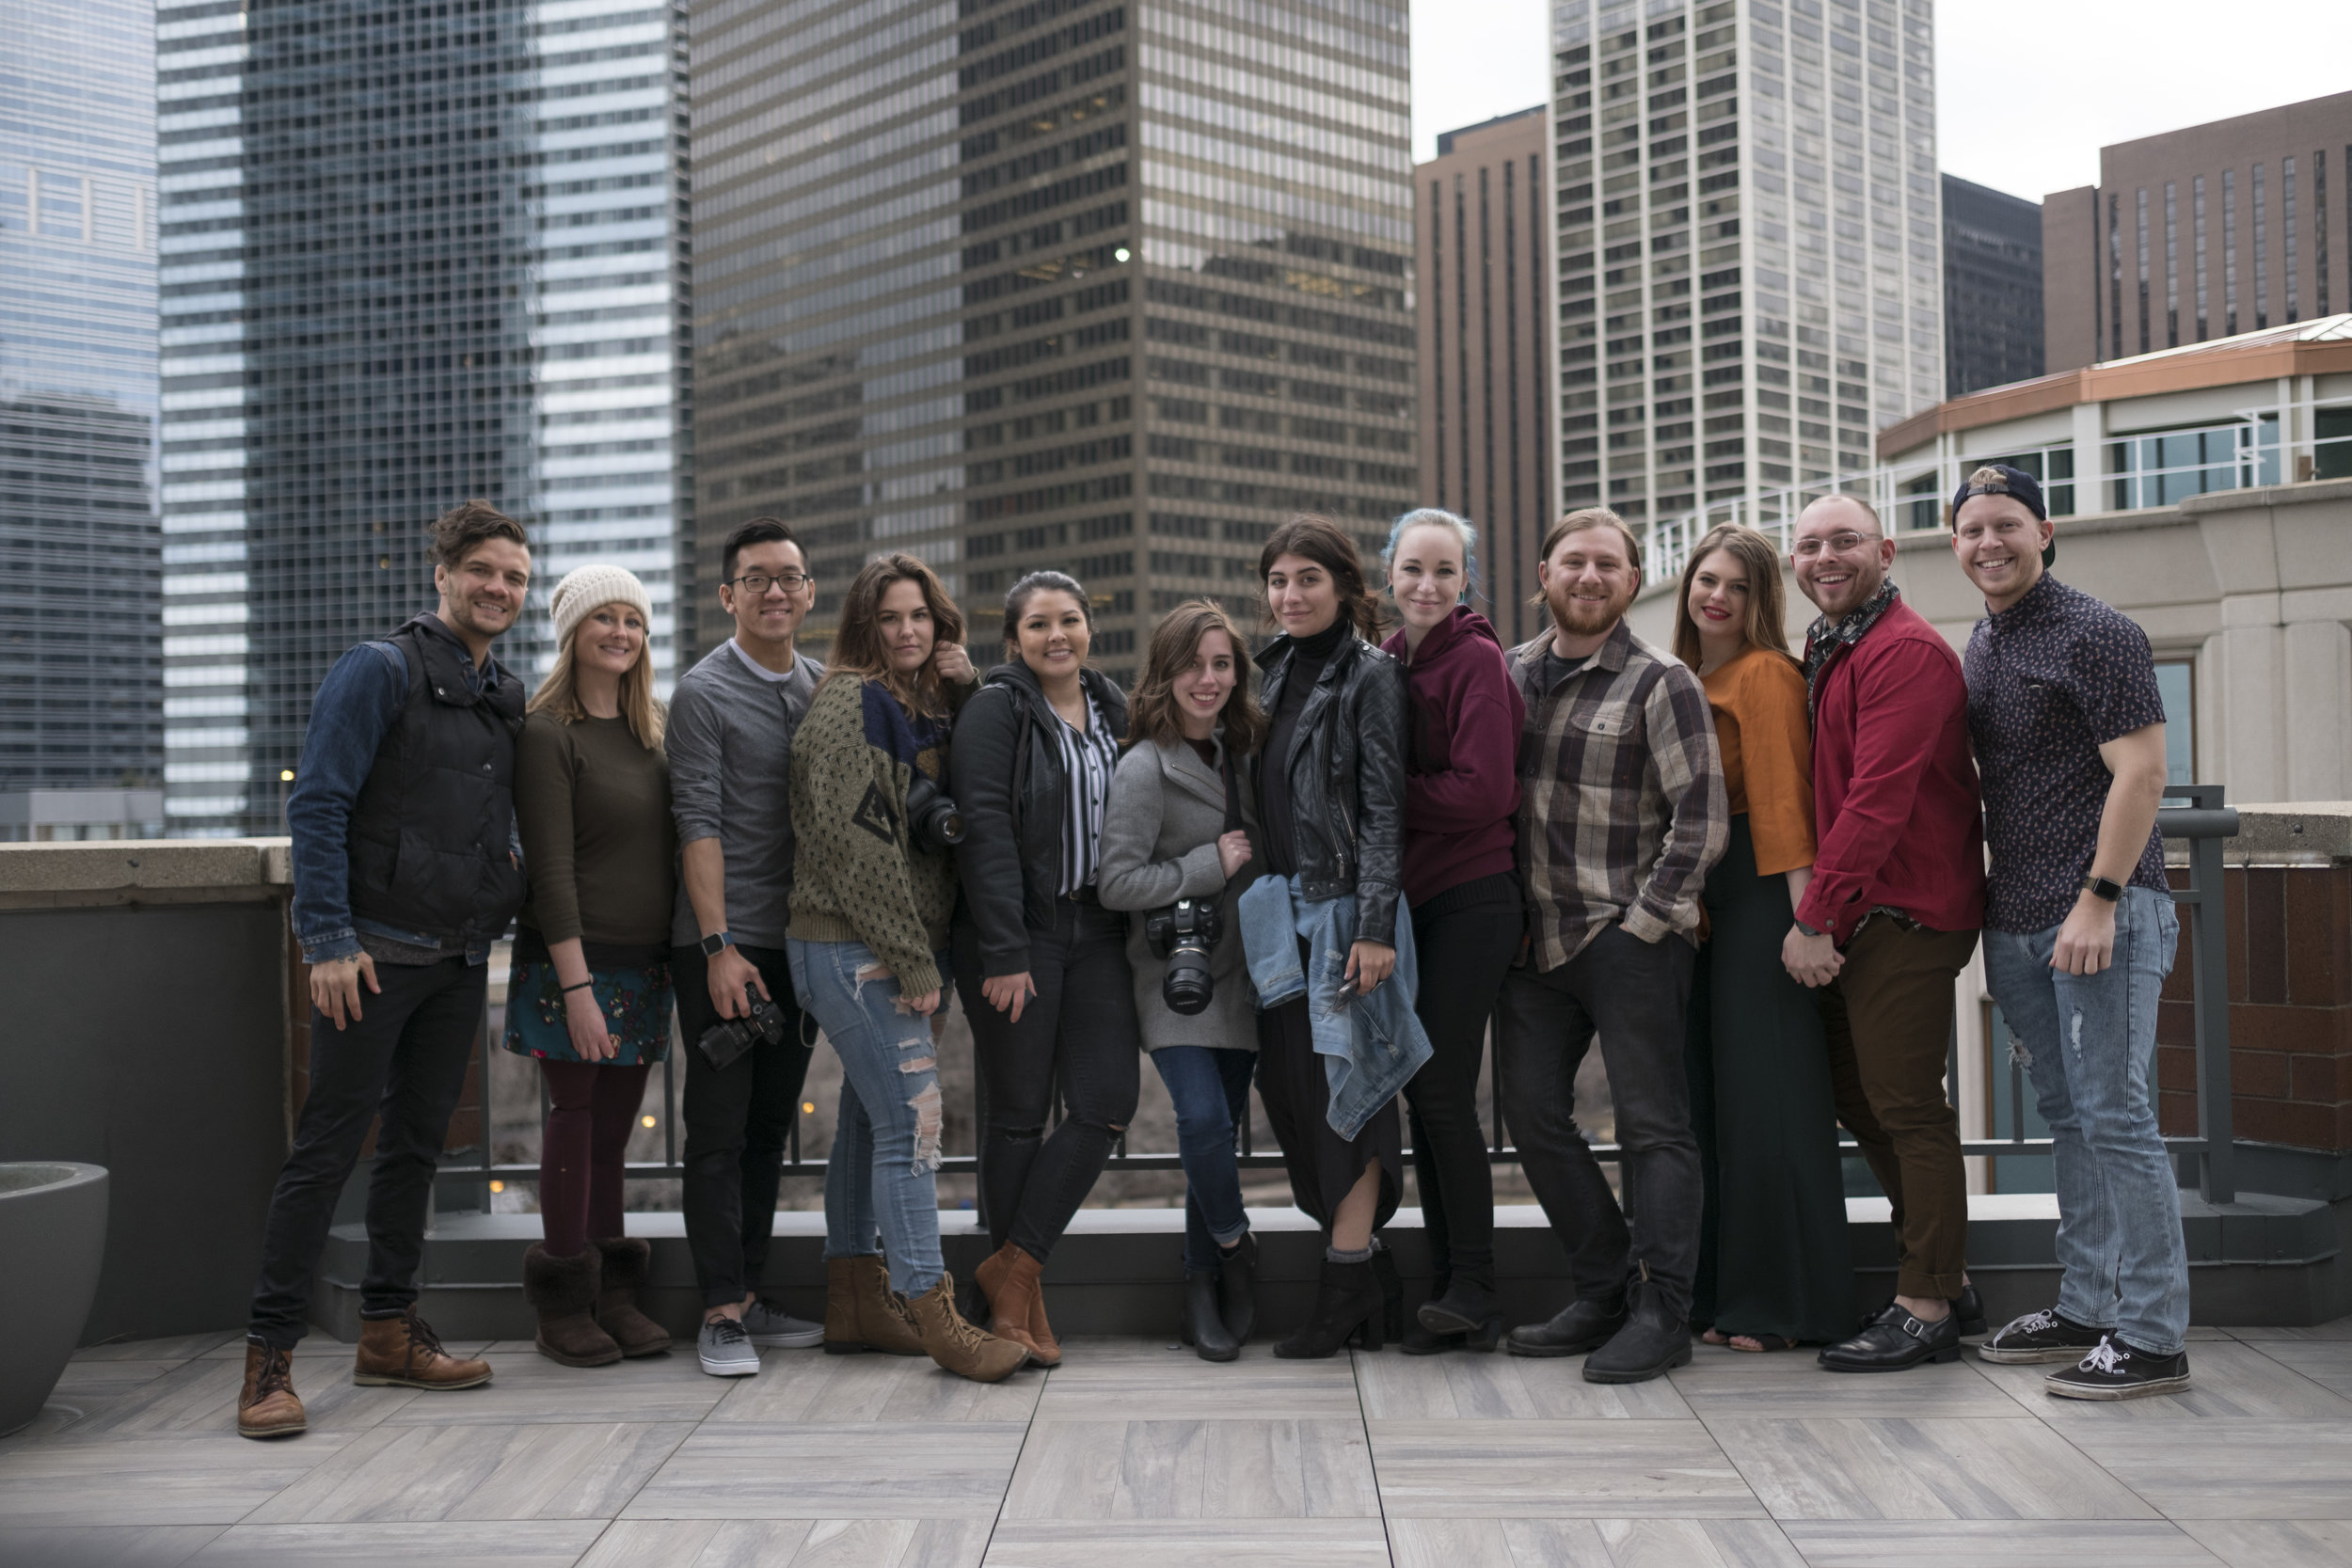 Photography Workshop in Chicago, IL